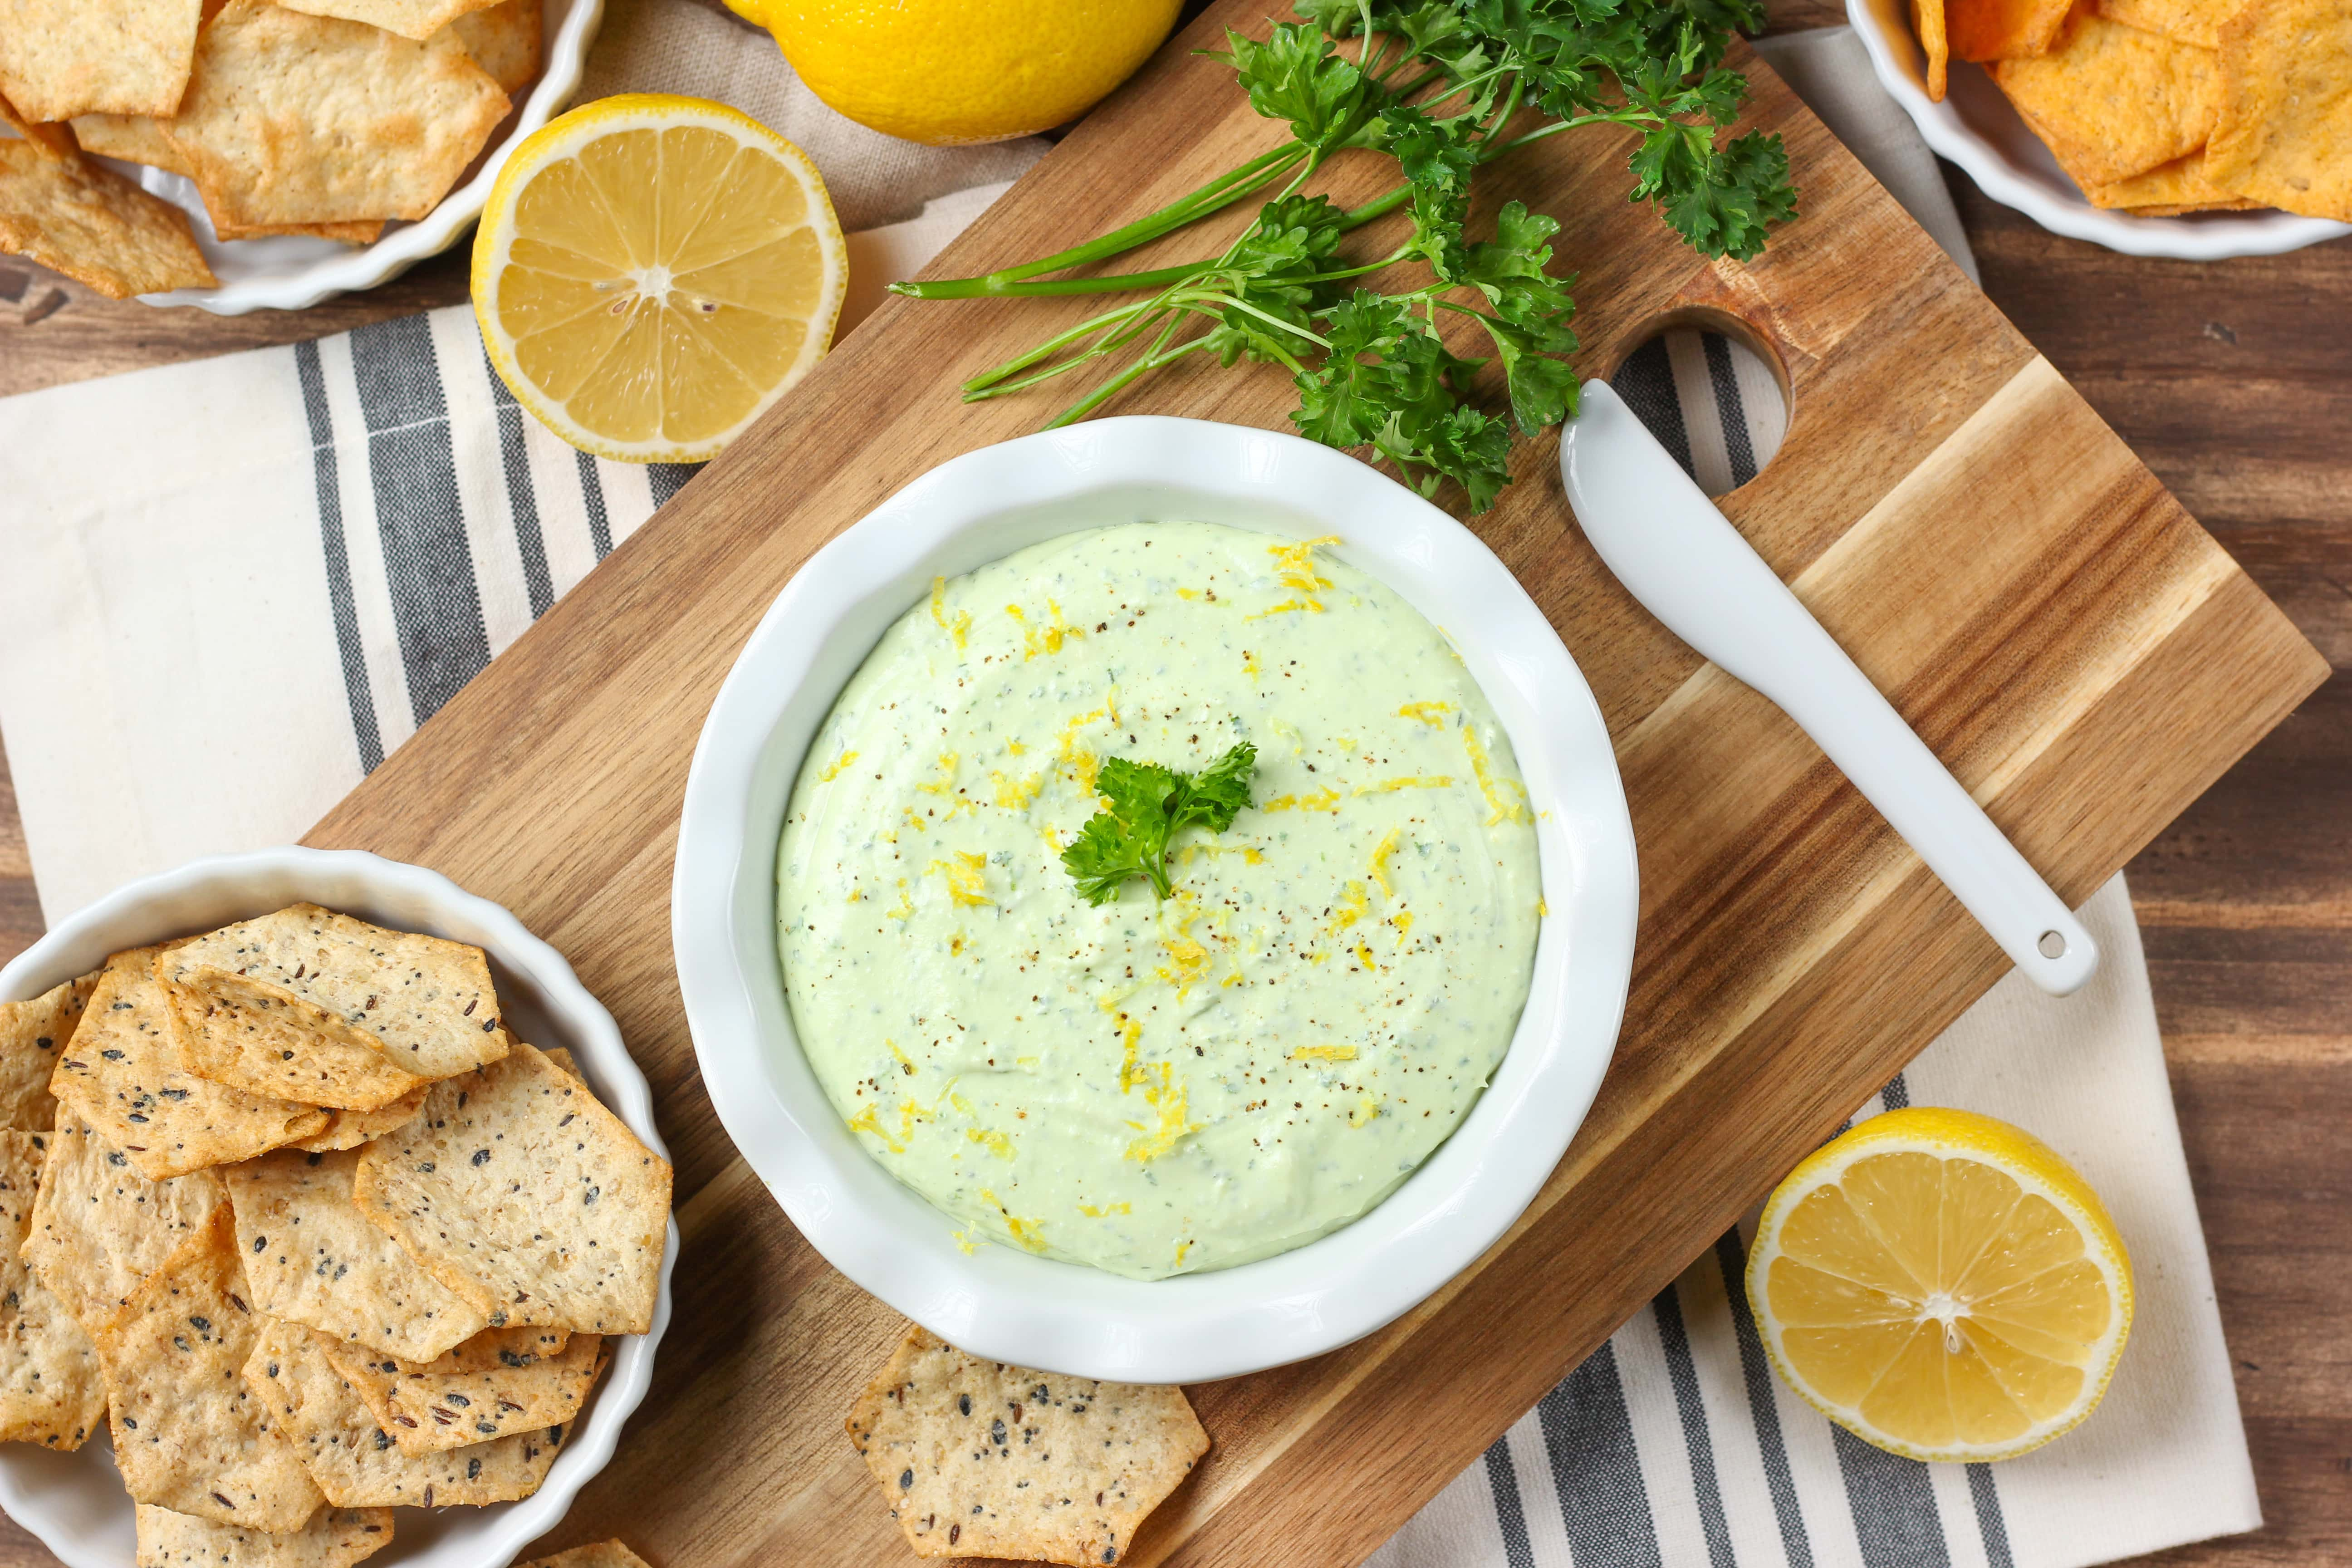 Easy Creamy Lemon Herb Feta Dip Recipe from A Kitchen Addiction